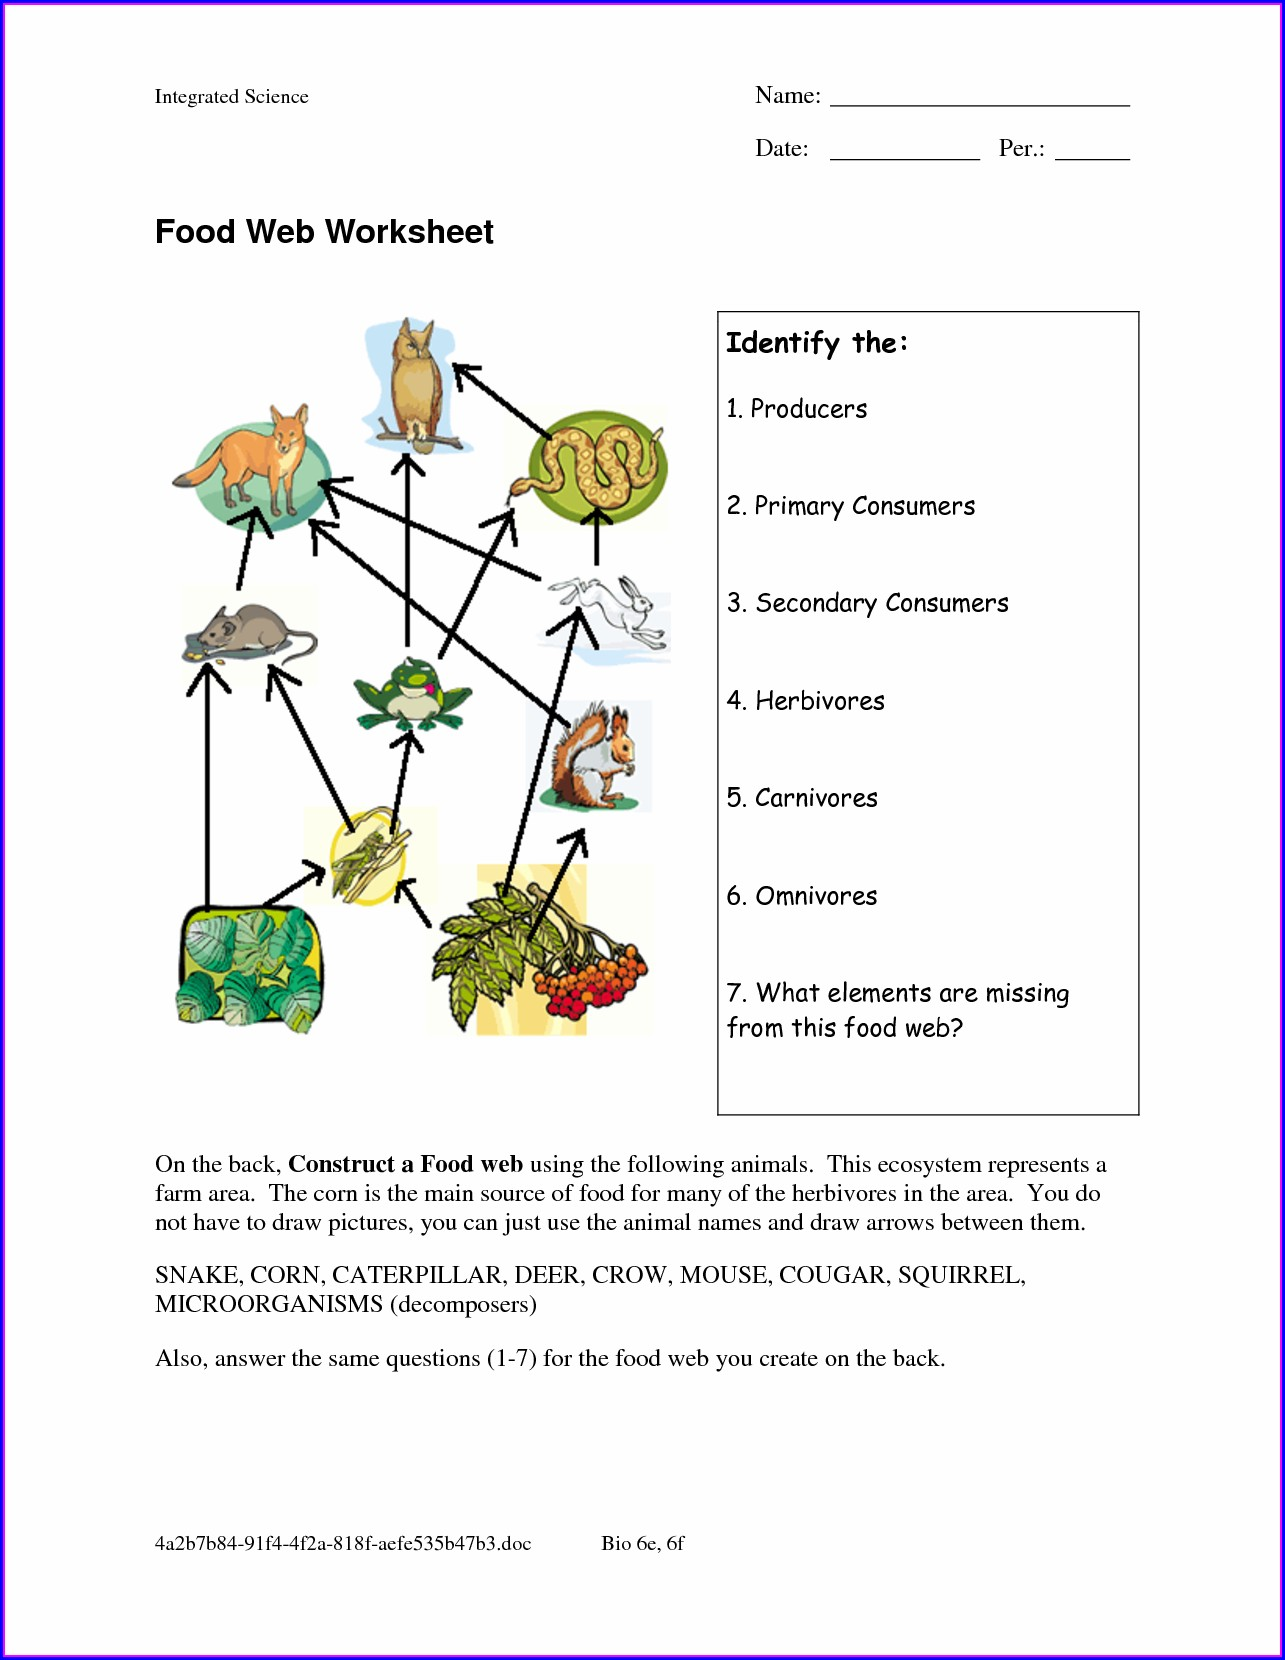 Food Web Review Worksheet Answer Key